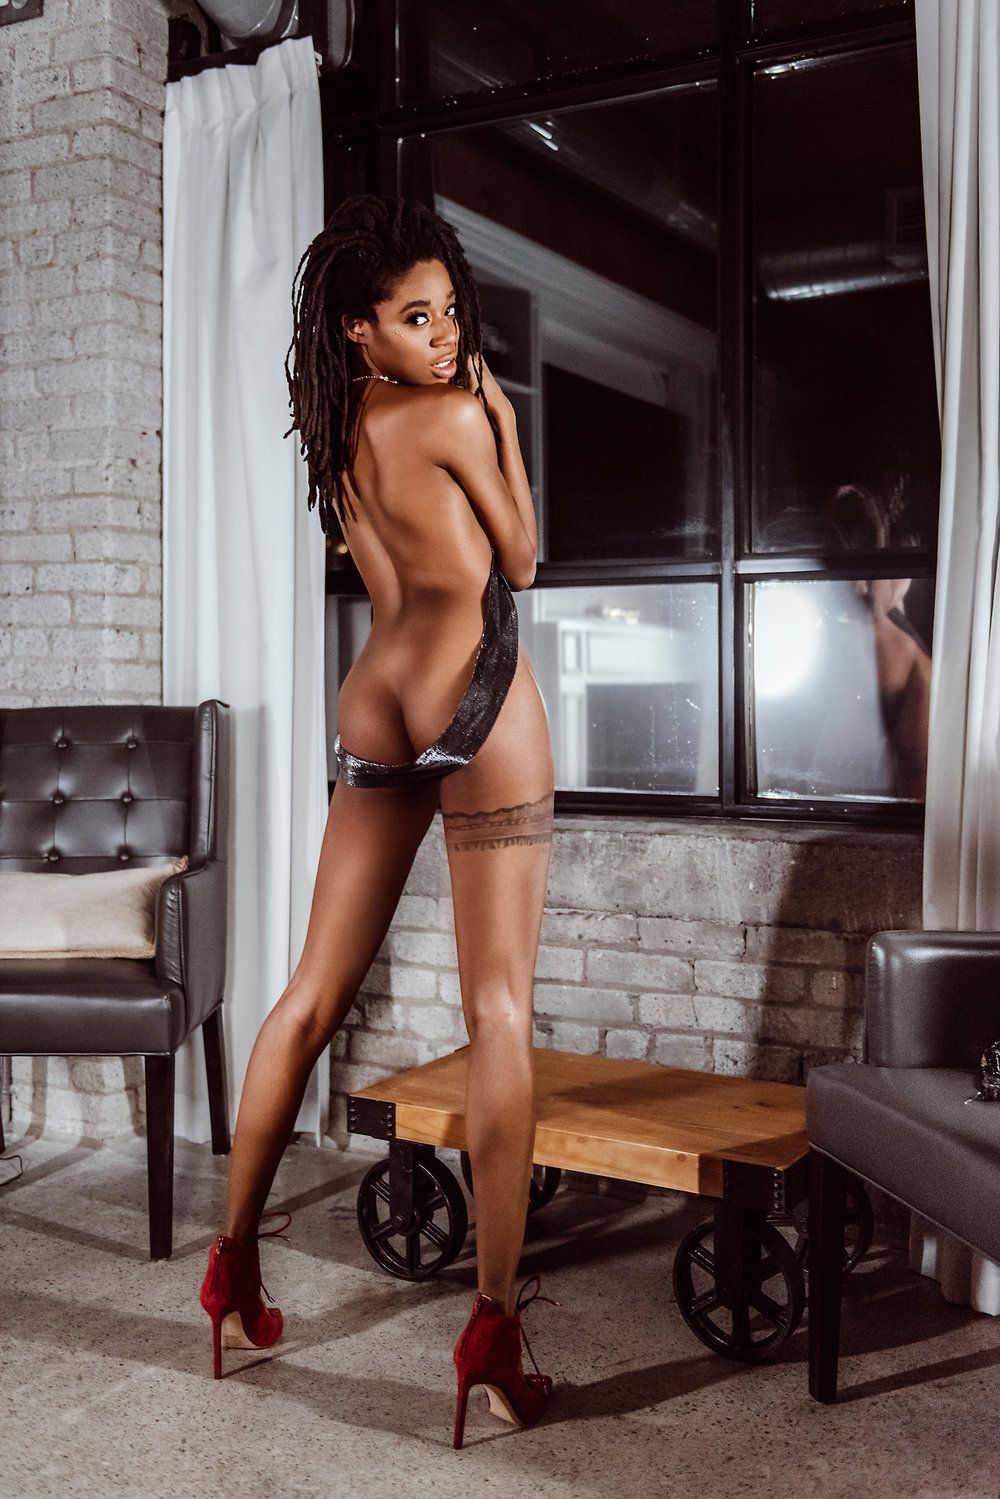 Kismet Charlatan: Toronto Ebony Petite Escort PSE Porn Star GFE Spinner Tattoos Dreads Natural Hair Lolita Young Roleplay Fetish BDSM Submissive Small Tits Small Breasts Ebony Ass Bubble Bum Black Booty Barbie Doll